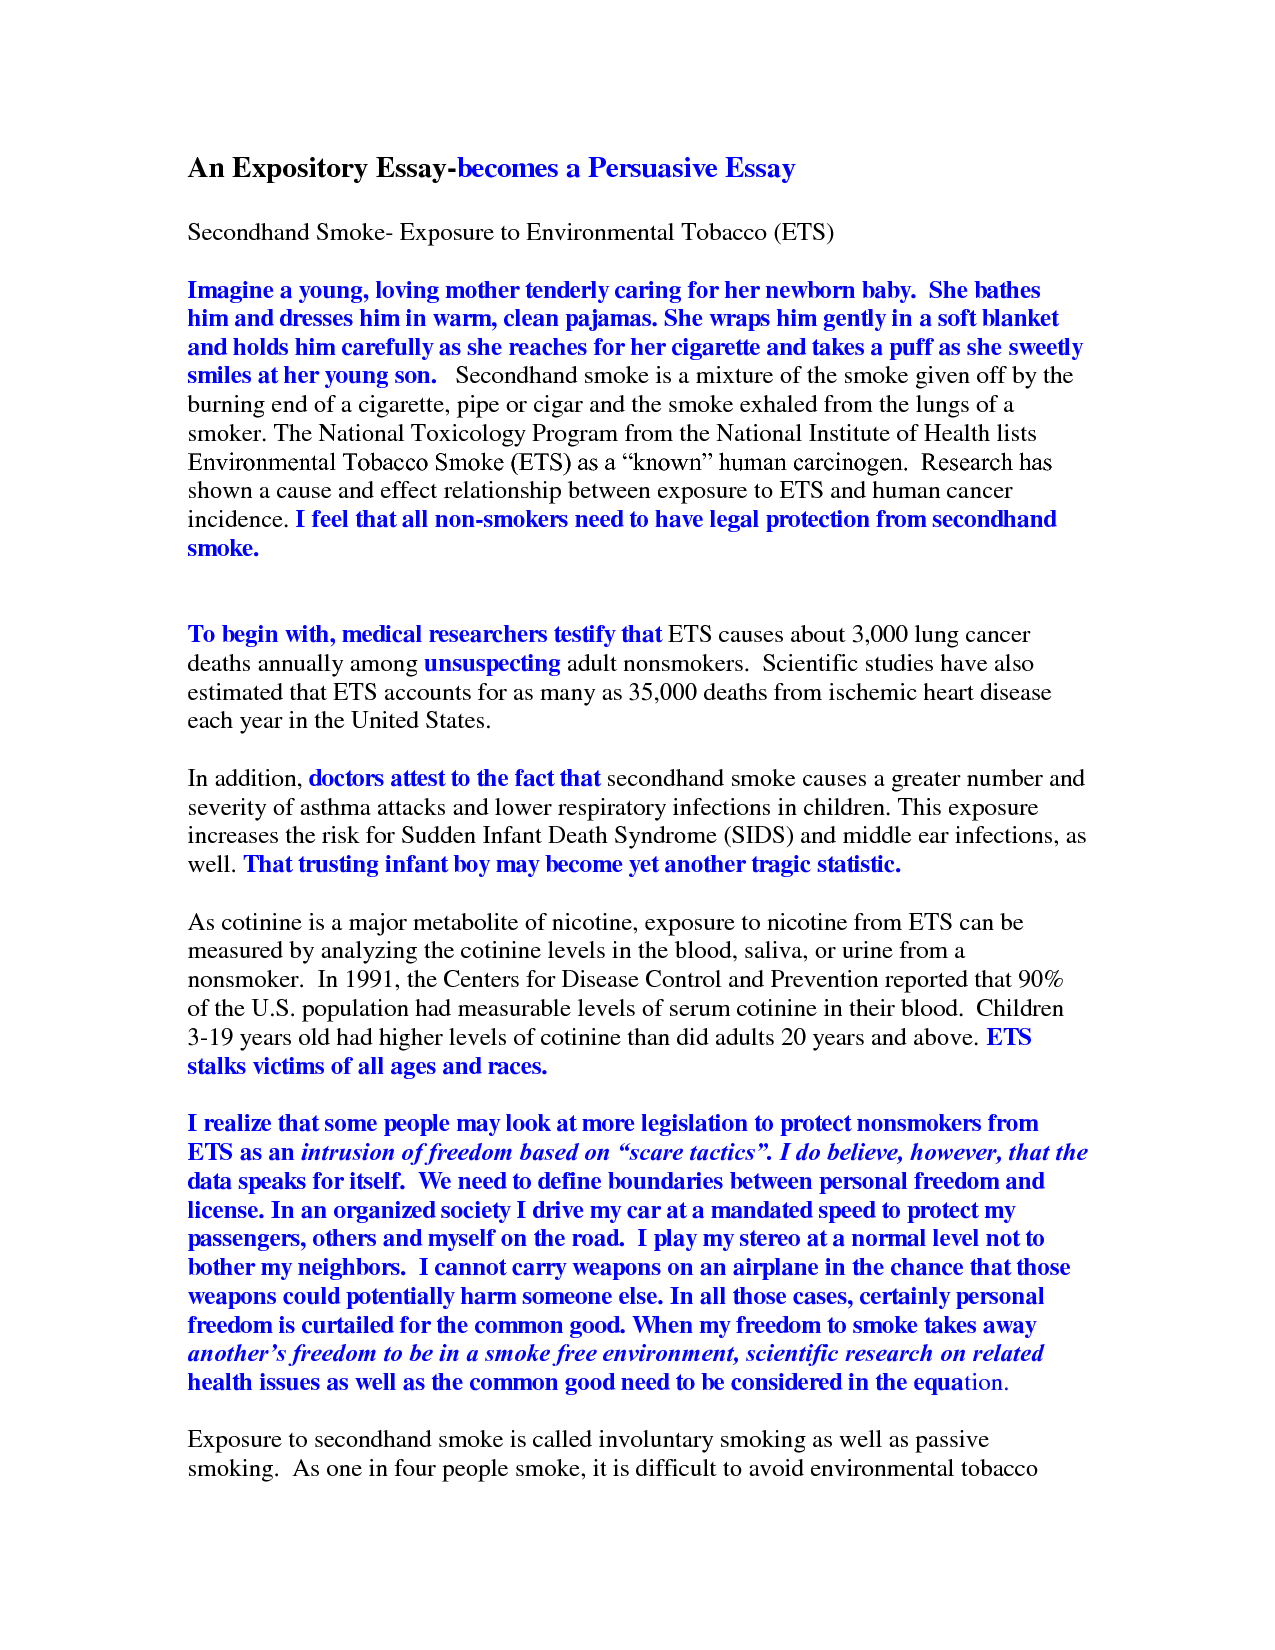 005 Whats An Expository Essay Fpucirorgs Phenomenal What Is Powerpoint What's Example Does Consist Of Full